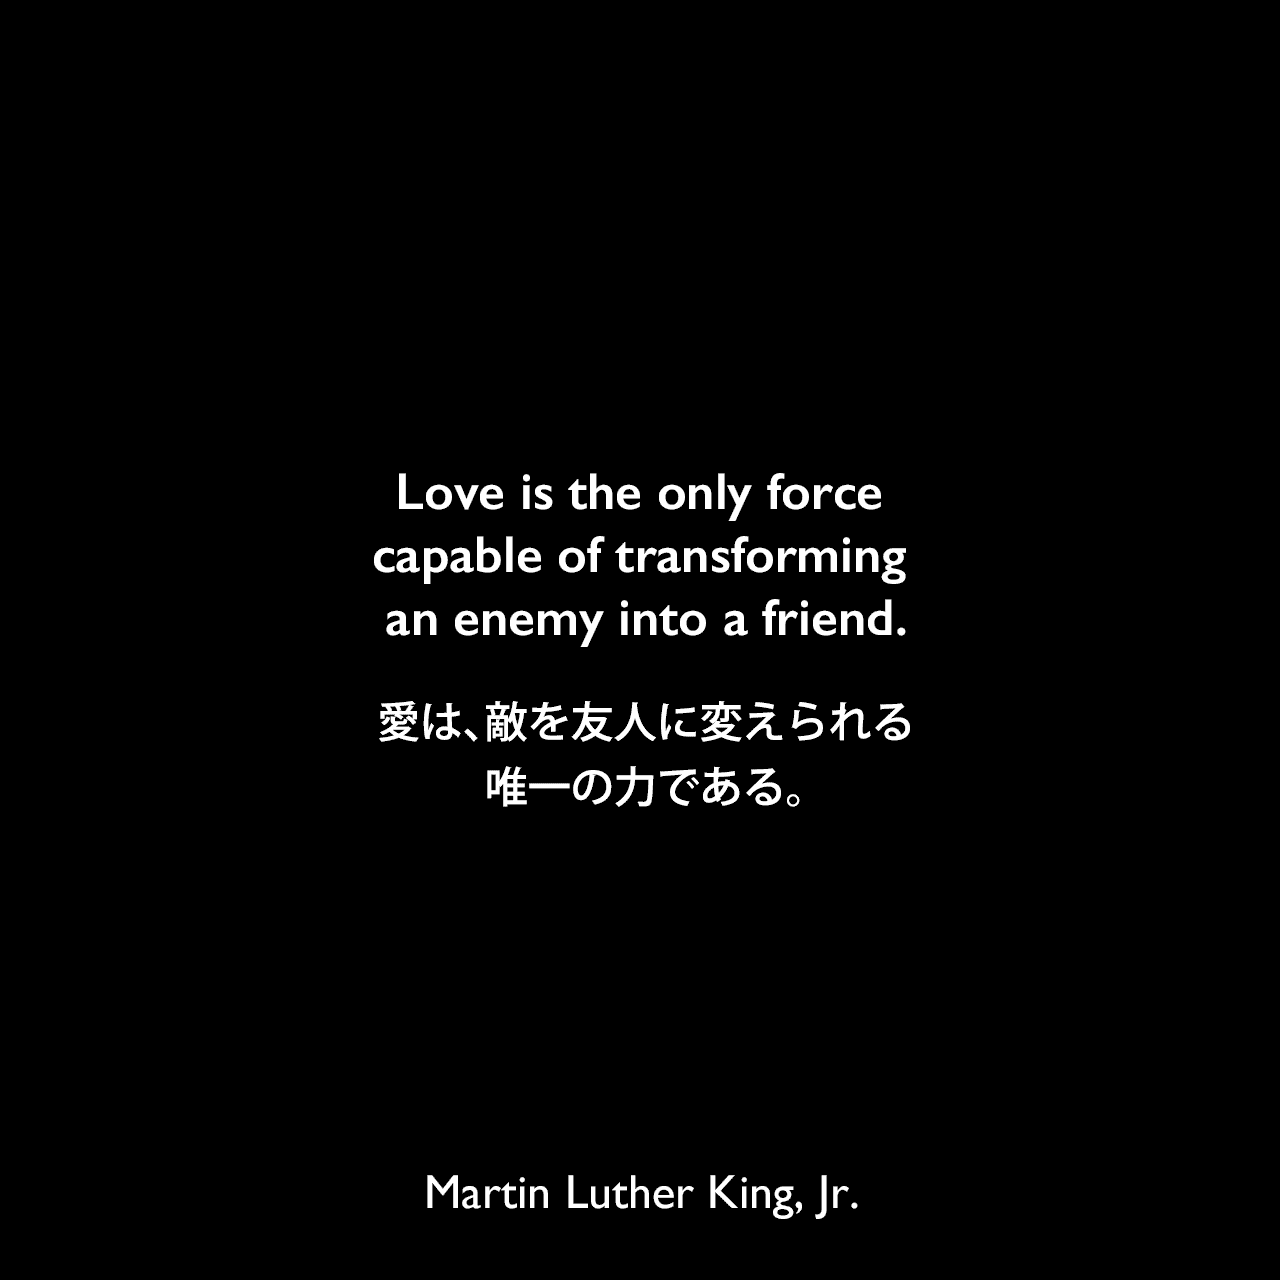 Love is the only force capable of transforming an enemy into a friend.愛は、敵を友人に変えられる唯一の力である。